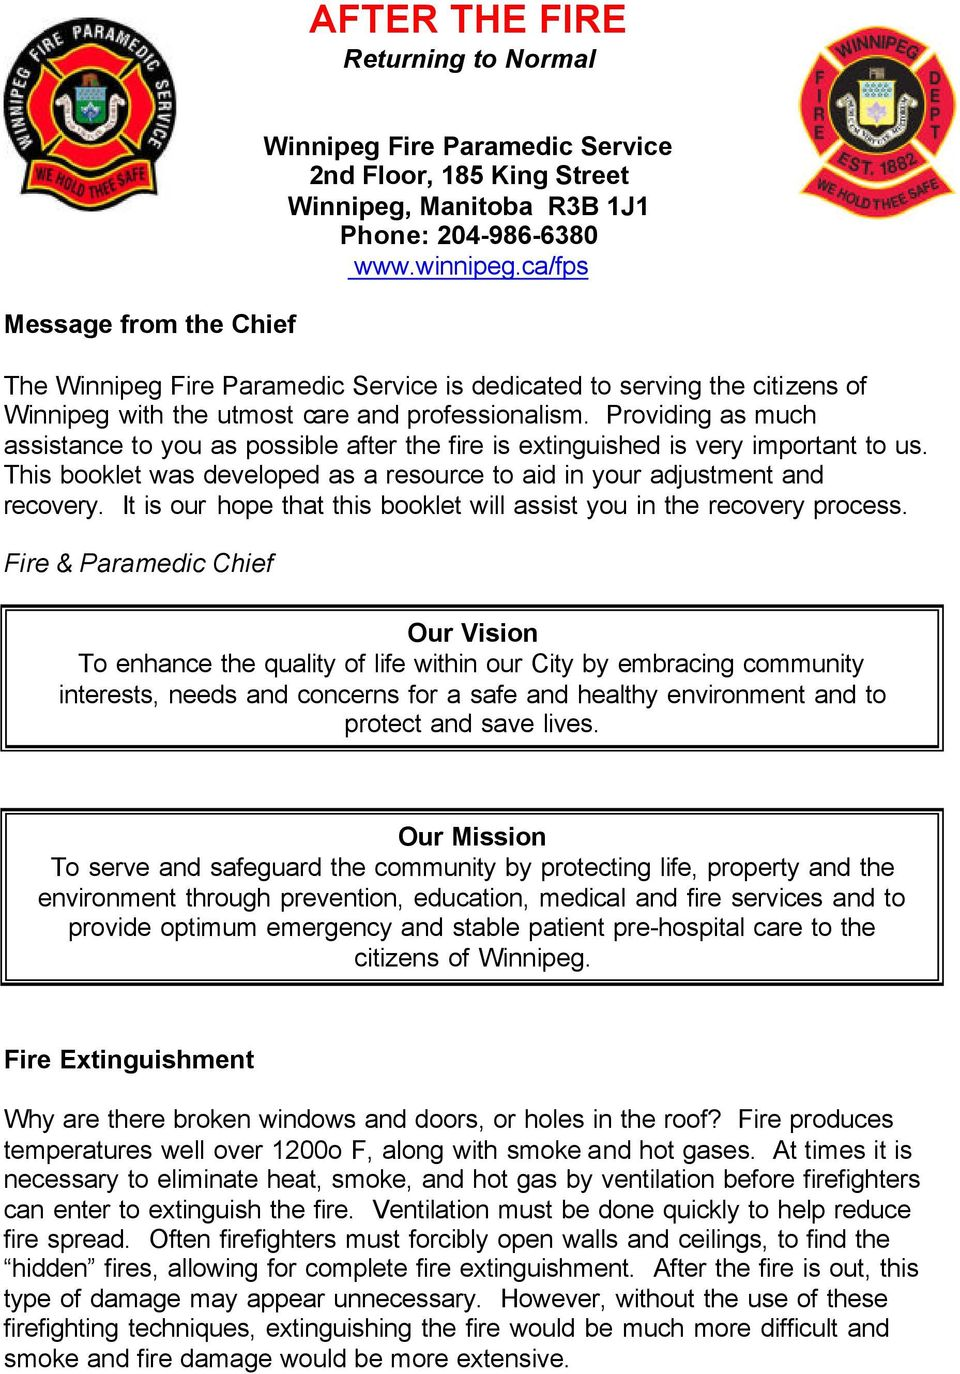 Providing as much assistance to you as possible after the fire is extinguished is very important to us. This booklet was developed as a resource to aid in your adjustment and recovery.